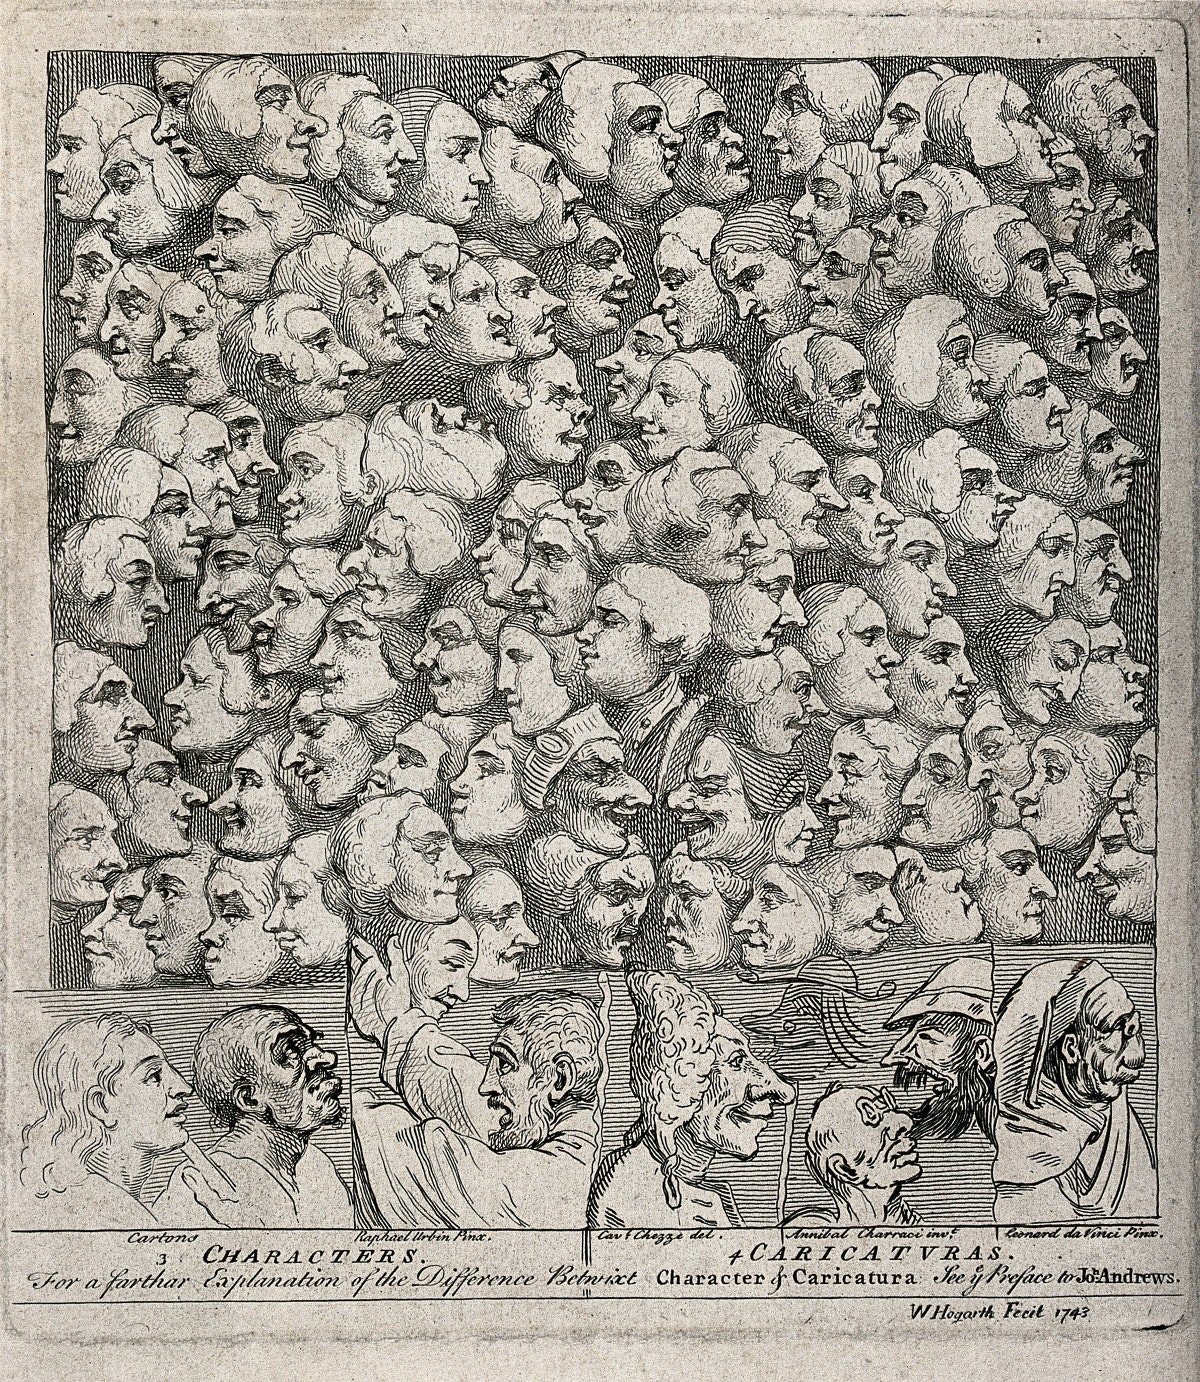 Hogarth Characters and Caricaturas (1743)